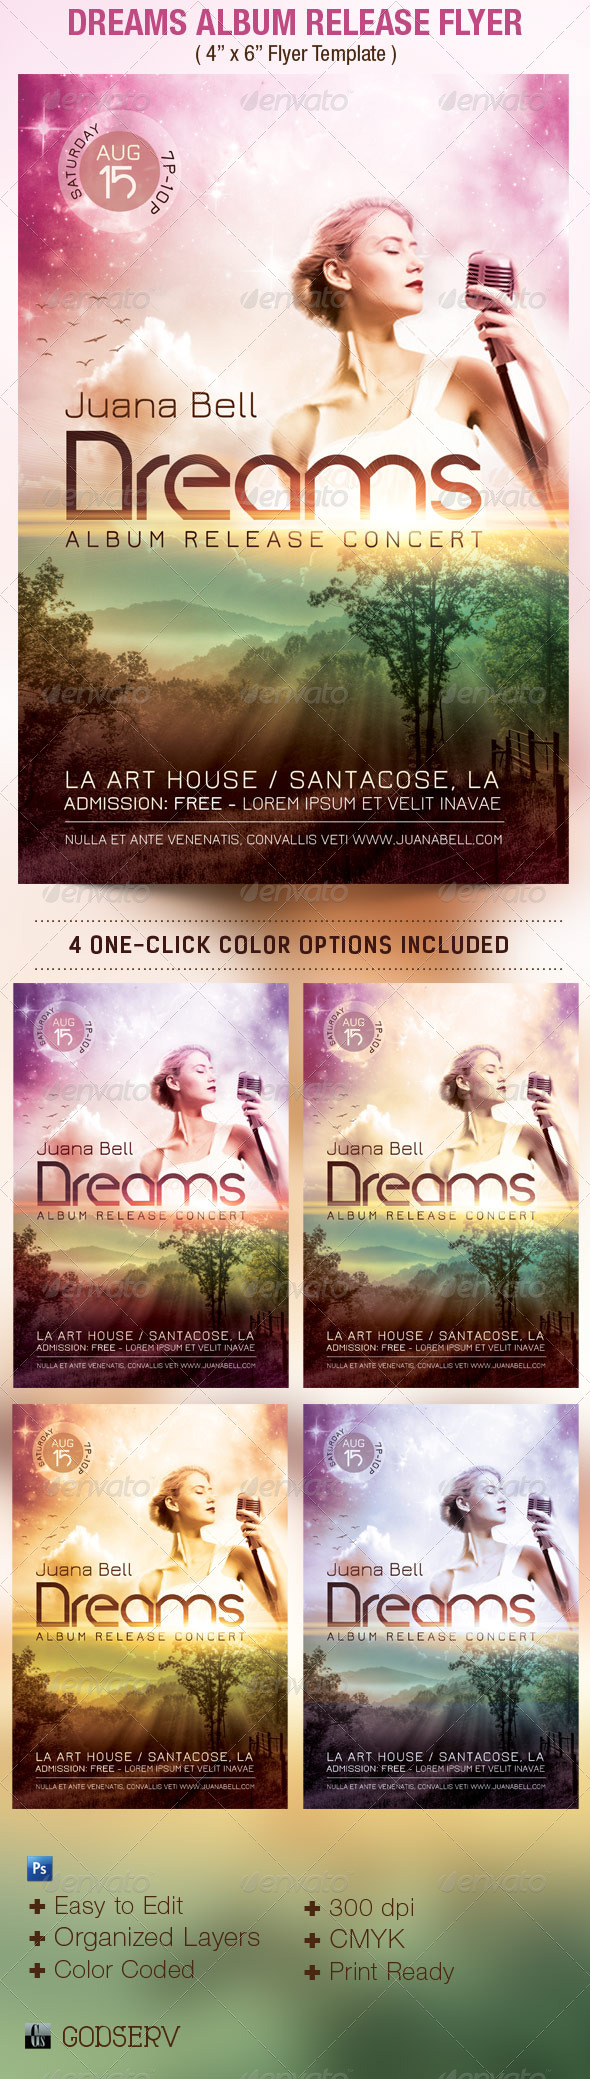 Dreams Album Release Flyer Template - Concerts Events